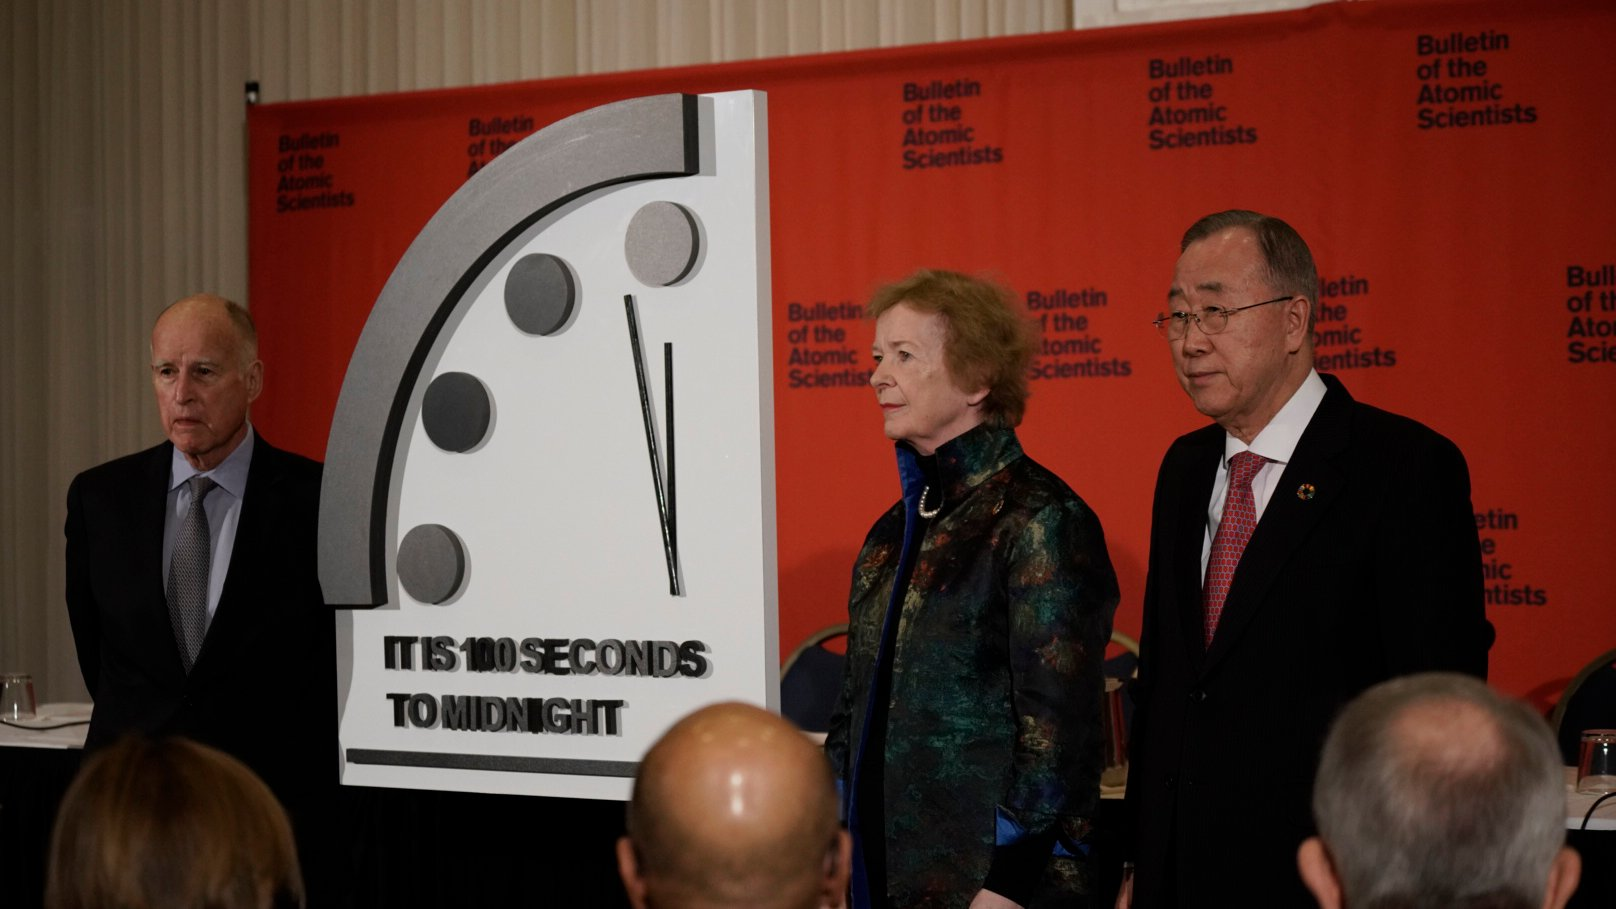 Doomsday Clock Moves 20 Seconds Closer To Midnight Chicago News